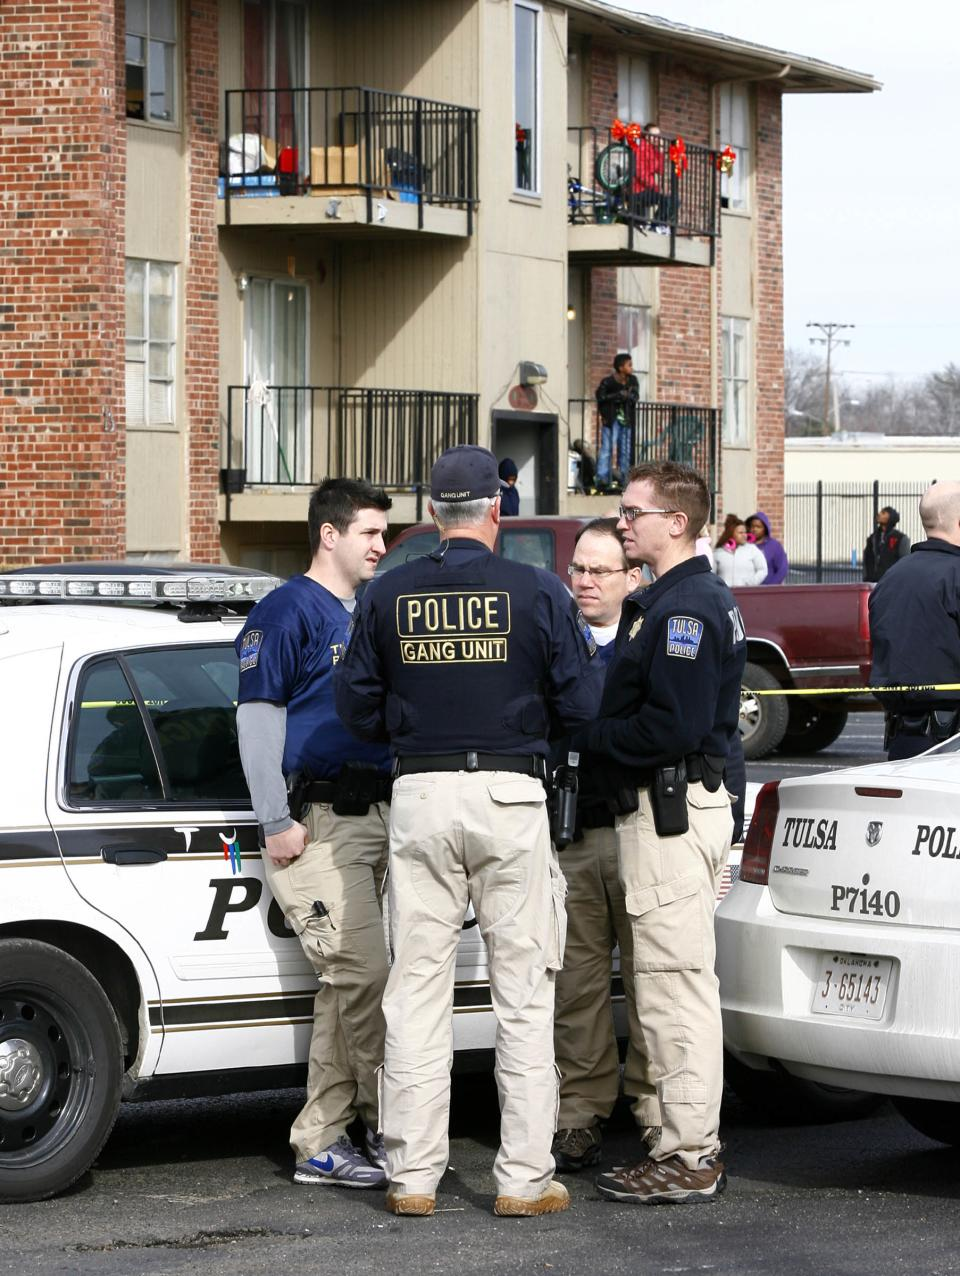 Officers from the Tulsa Police Department's Gang Unit gather after a quadruple homicide at Tulsa's Fairmont Terrace apartment complex on Monday, Jan. 7, 2013.  Four women were found shot to death inside an apartment, where a 4-year-old boy was also found unharmed.  (AP Photo/Tulsa World, Matt Barnard )   TV OUT; TULSA OUT